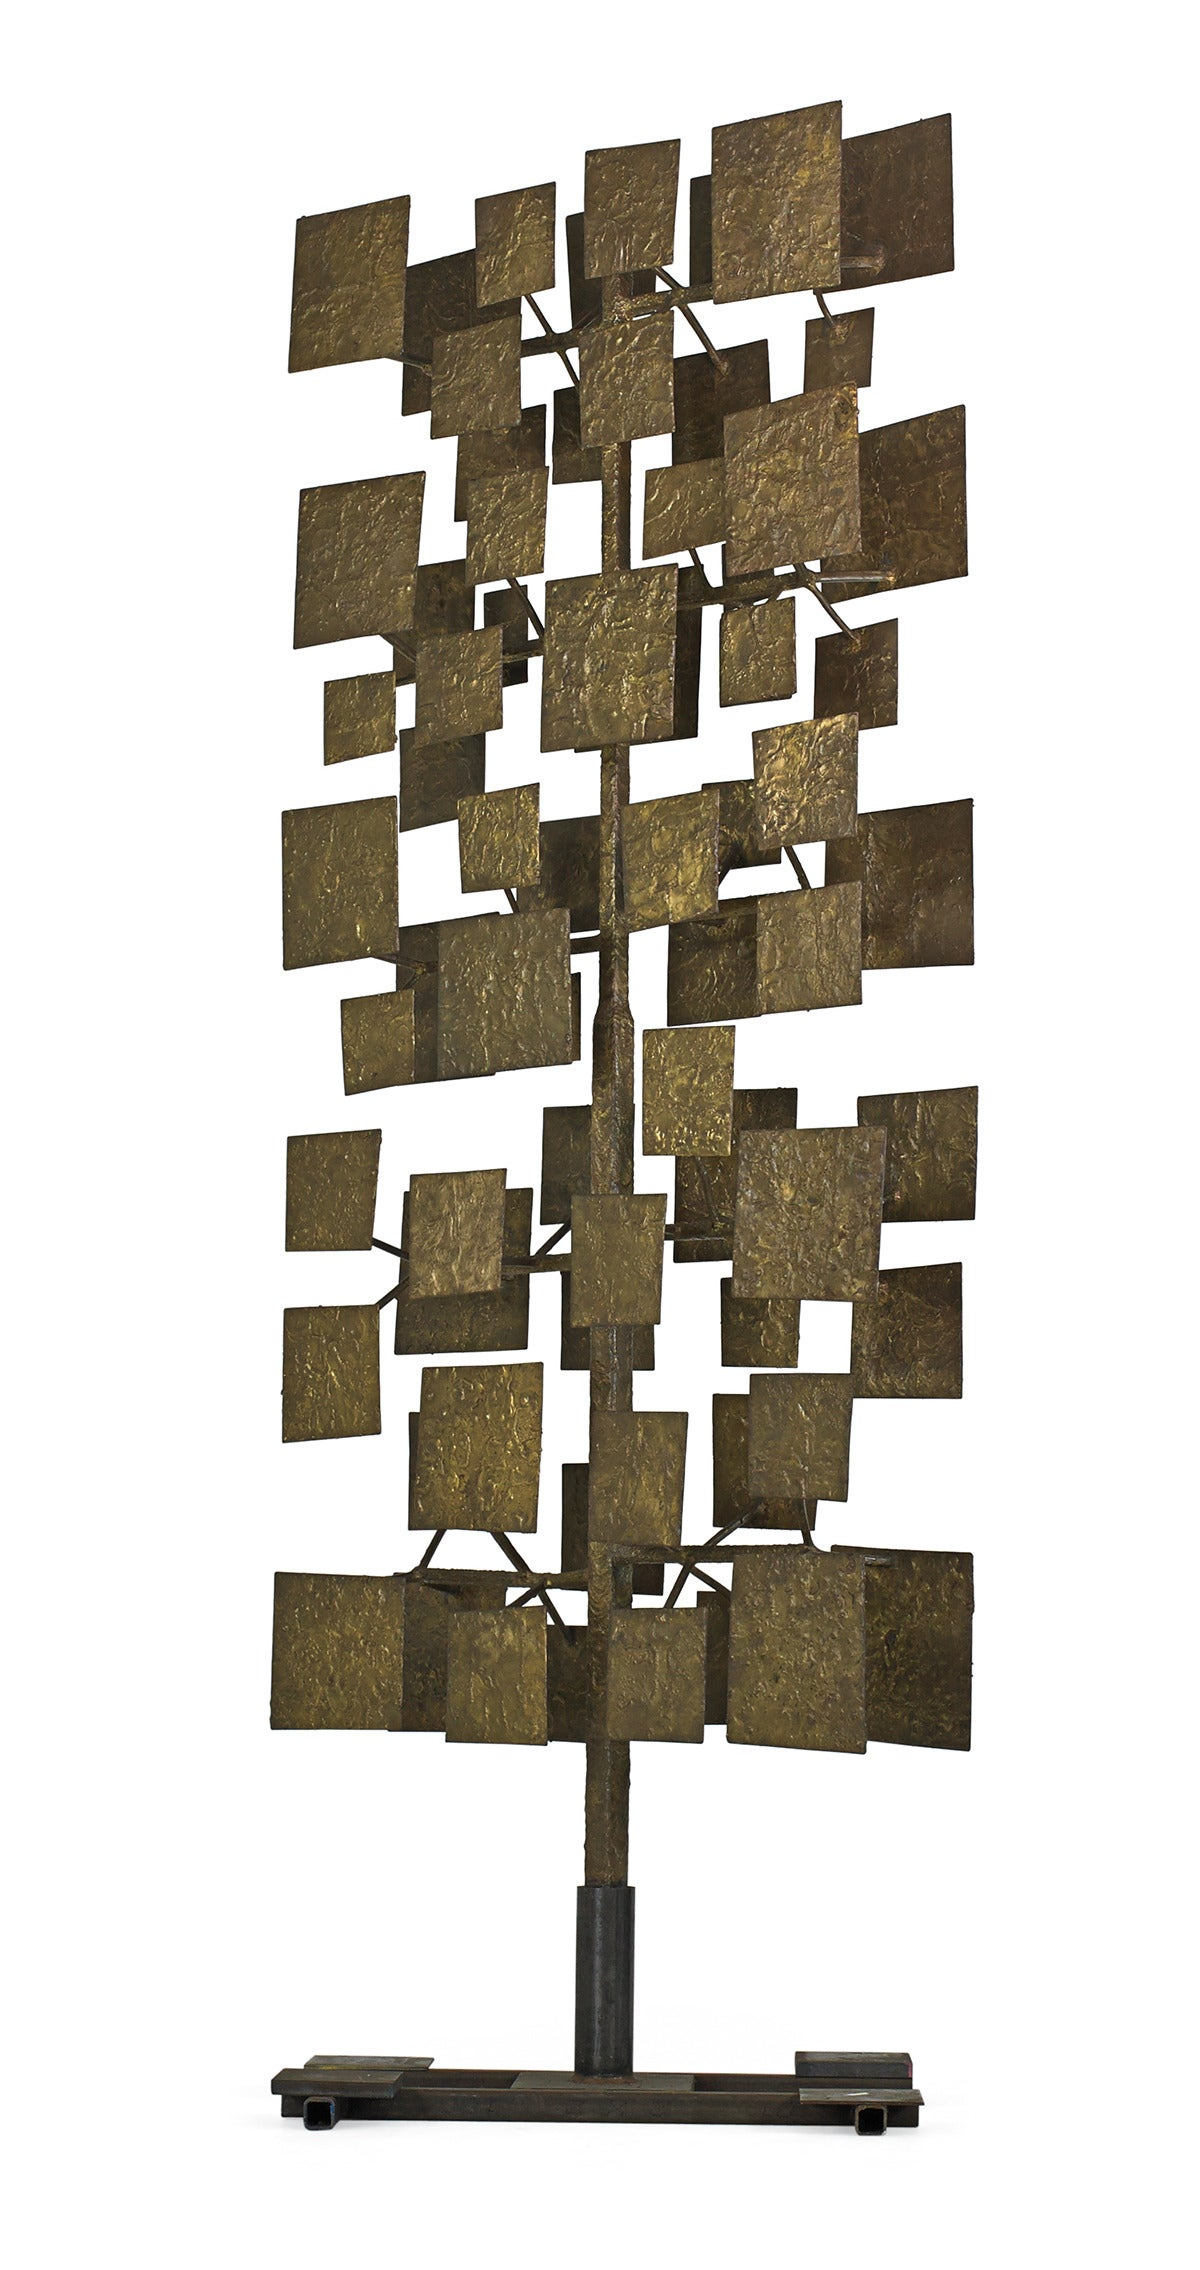 American Harry Bertoia Sculpture Screen Commissioned by Florence Knoll, USA 1959 For Sale